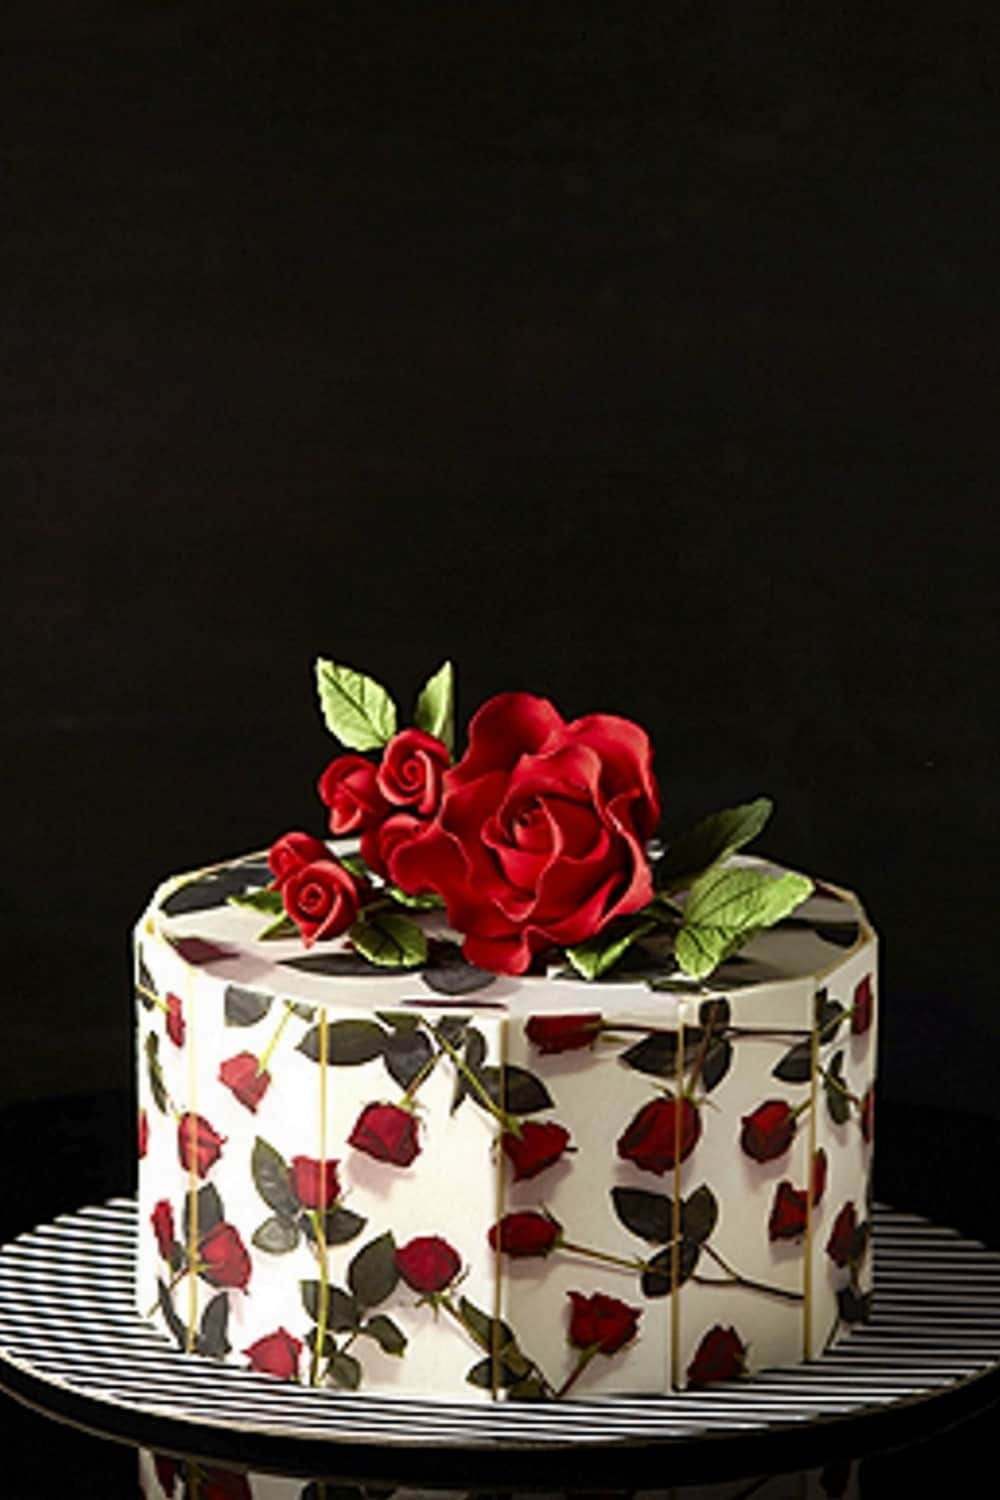 Ms Bs CAKERY Decadent cakes just like a home kitchen made fresh